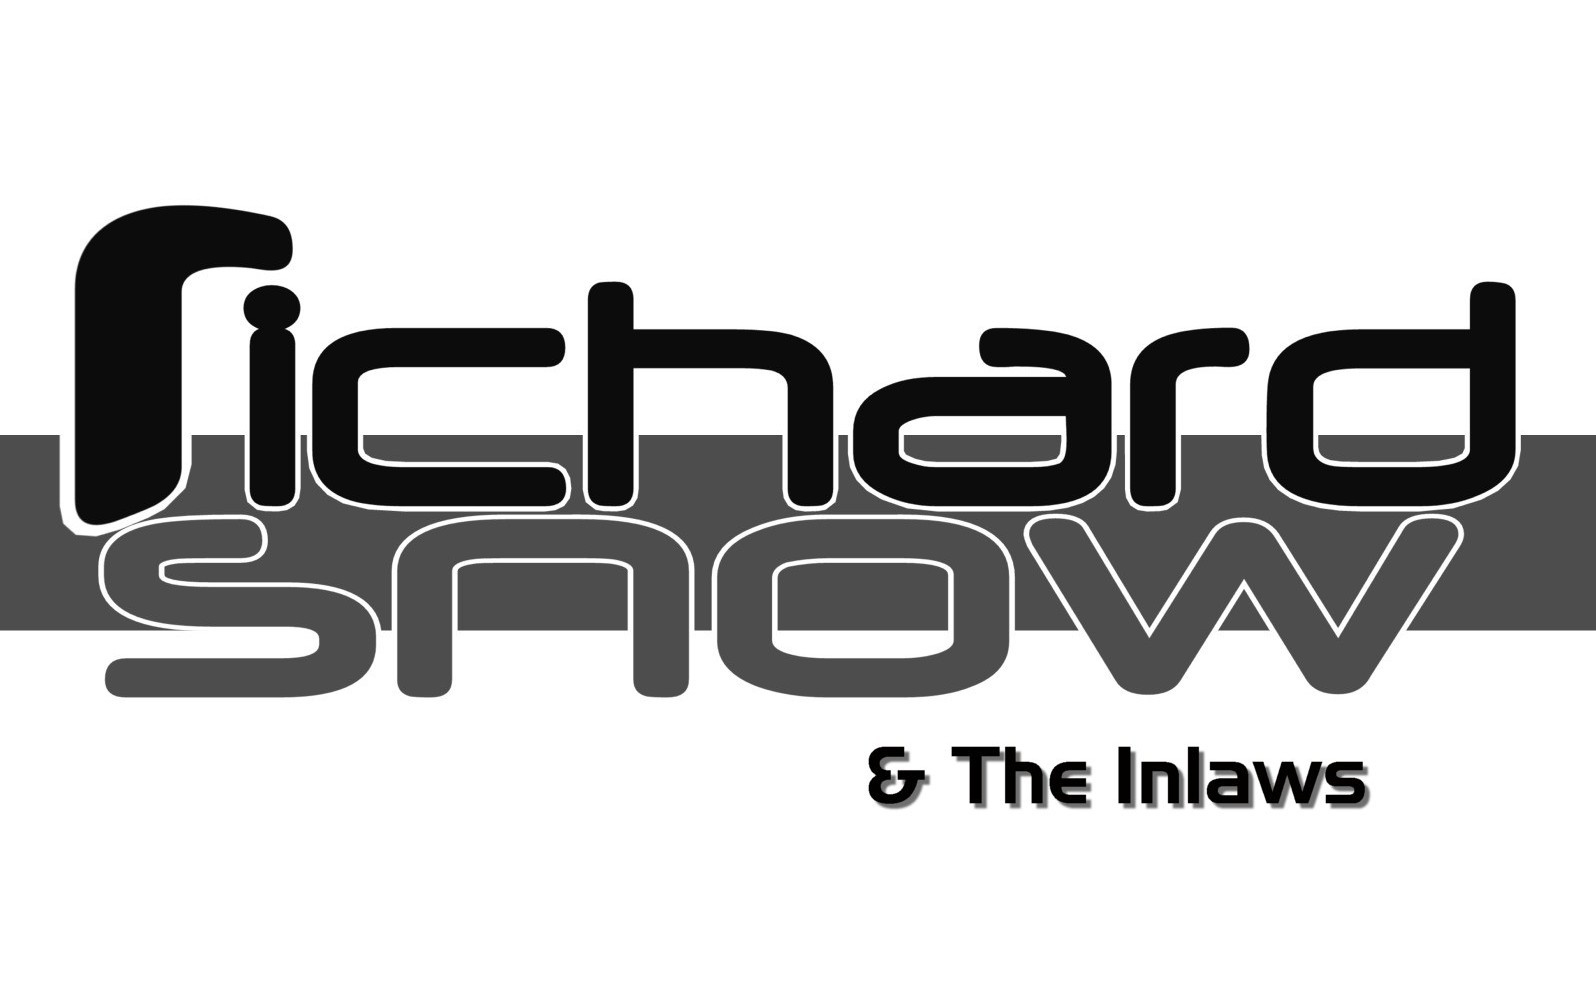 http://indiemusicpeople.com/uploads2/Richard_Snow_and_The_Inlaws_-_logo.jpg